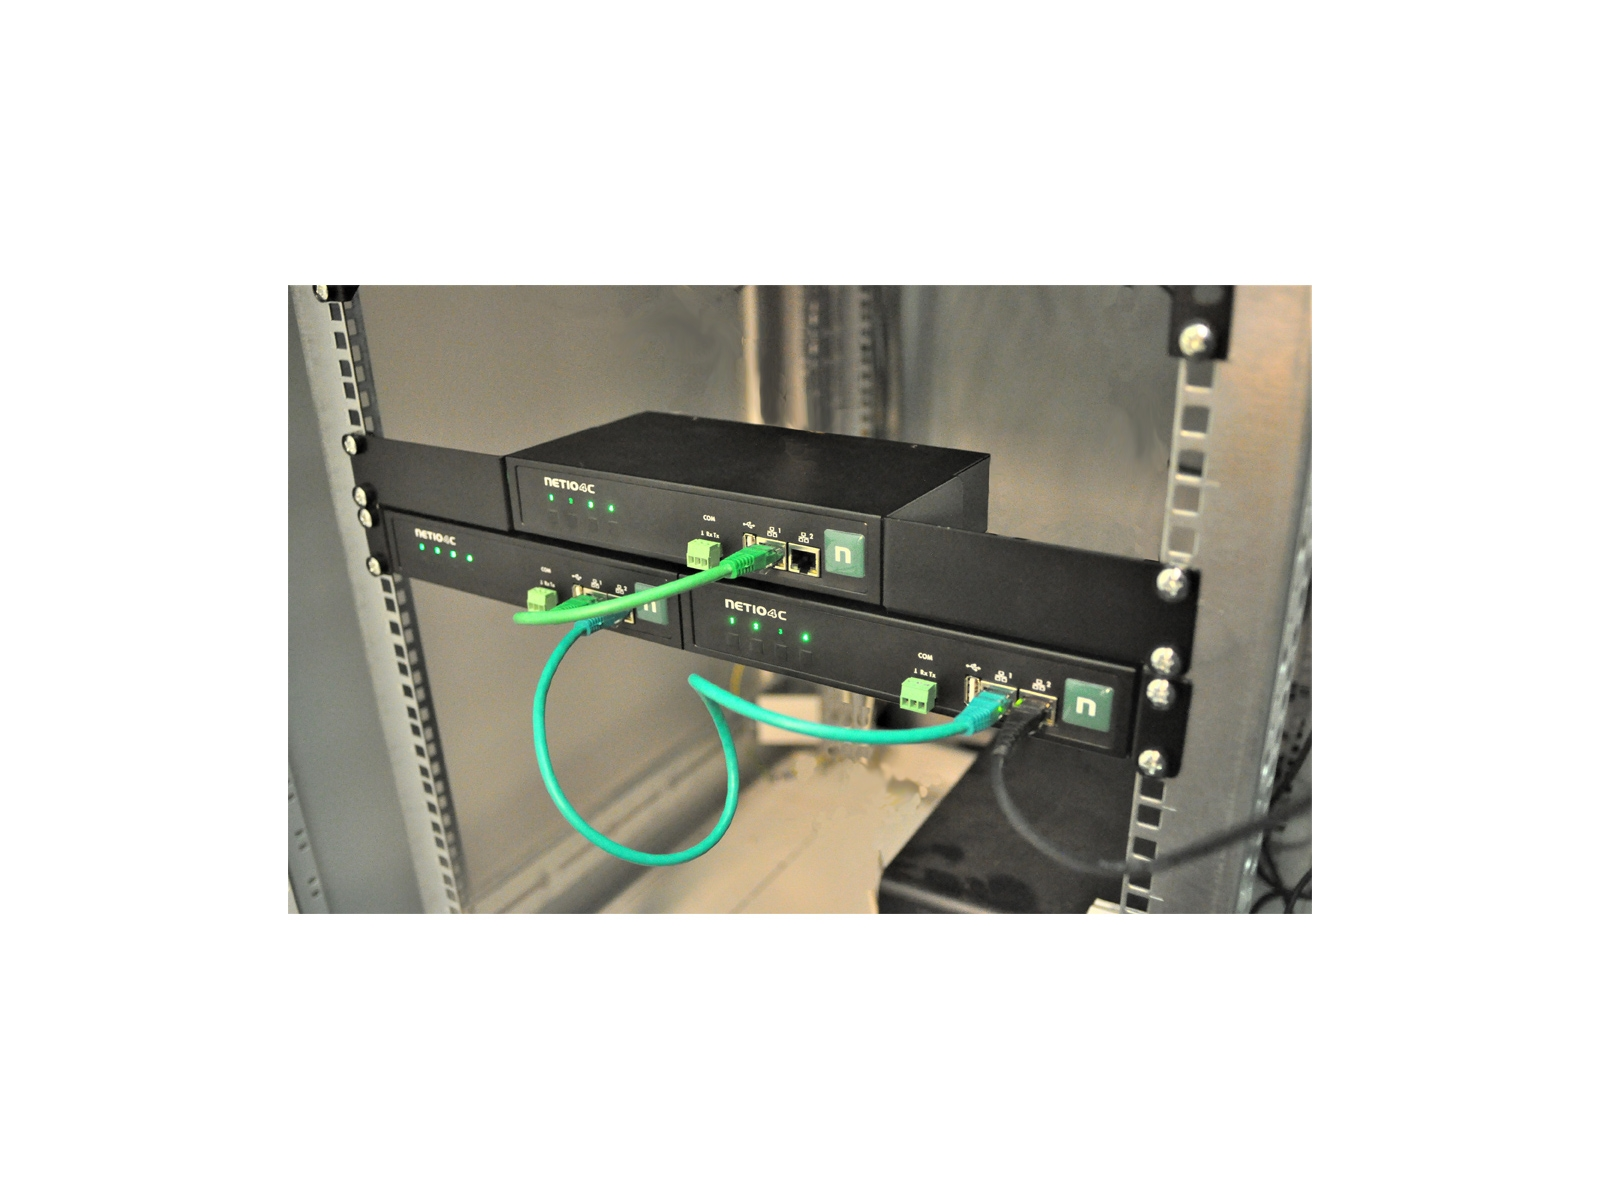 PowerPDU 4C can be daisy chained by RJ 45 - built-in ethernet switch